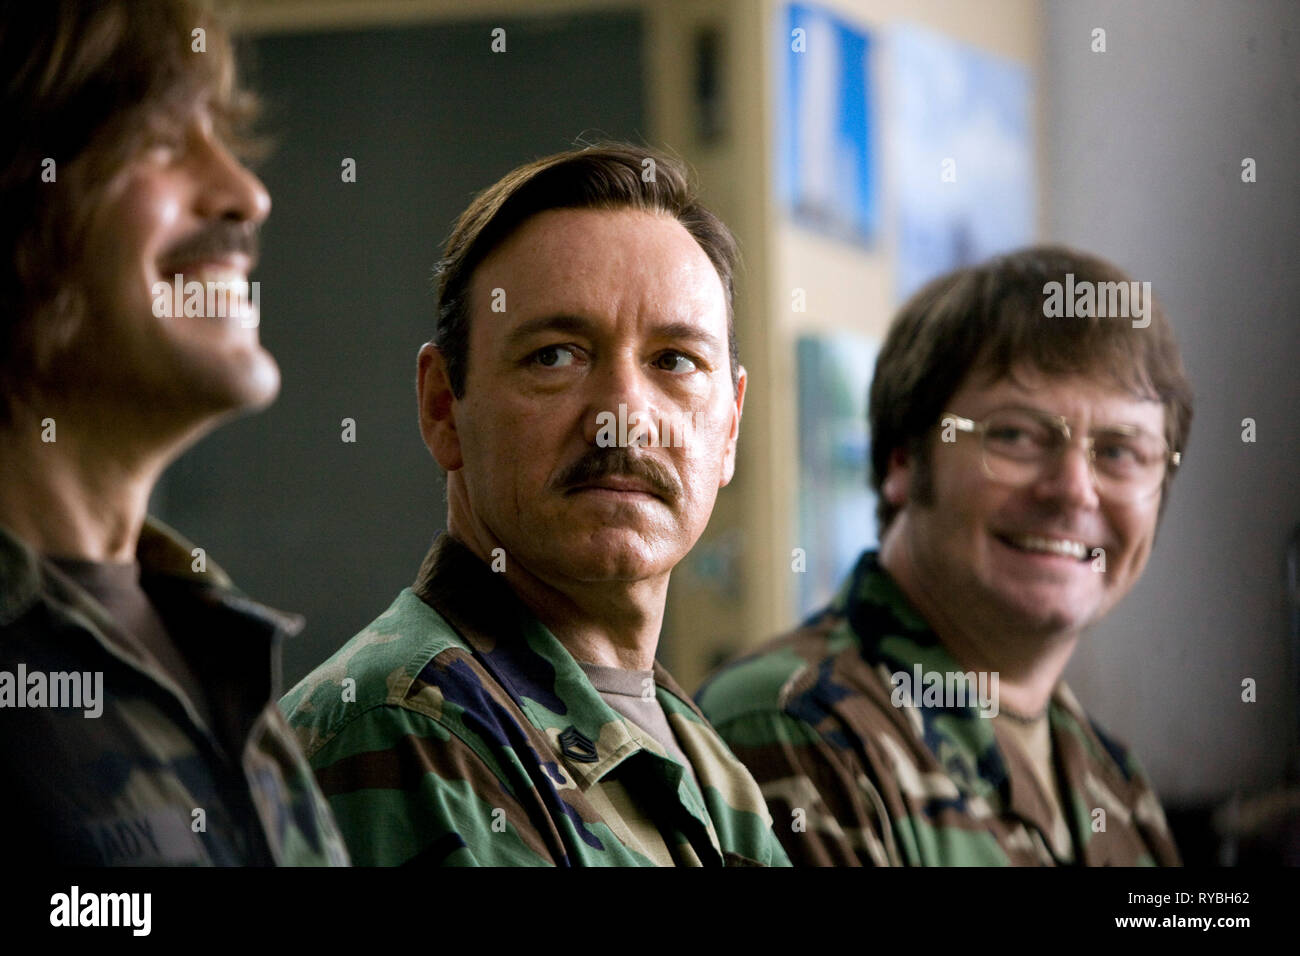 GEORGE CLOONEY, KEVIN SPACEY,NICK OFFERMAN, THE MEN WHO STARE AT GOATS, 2009 - Stock Image